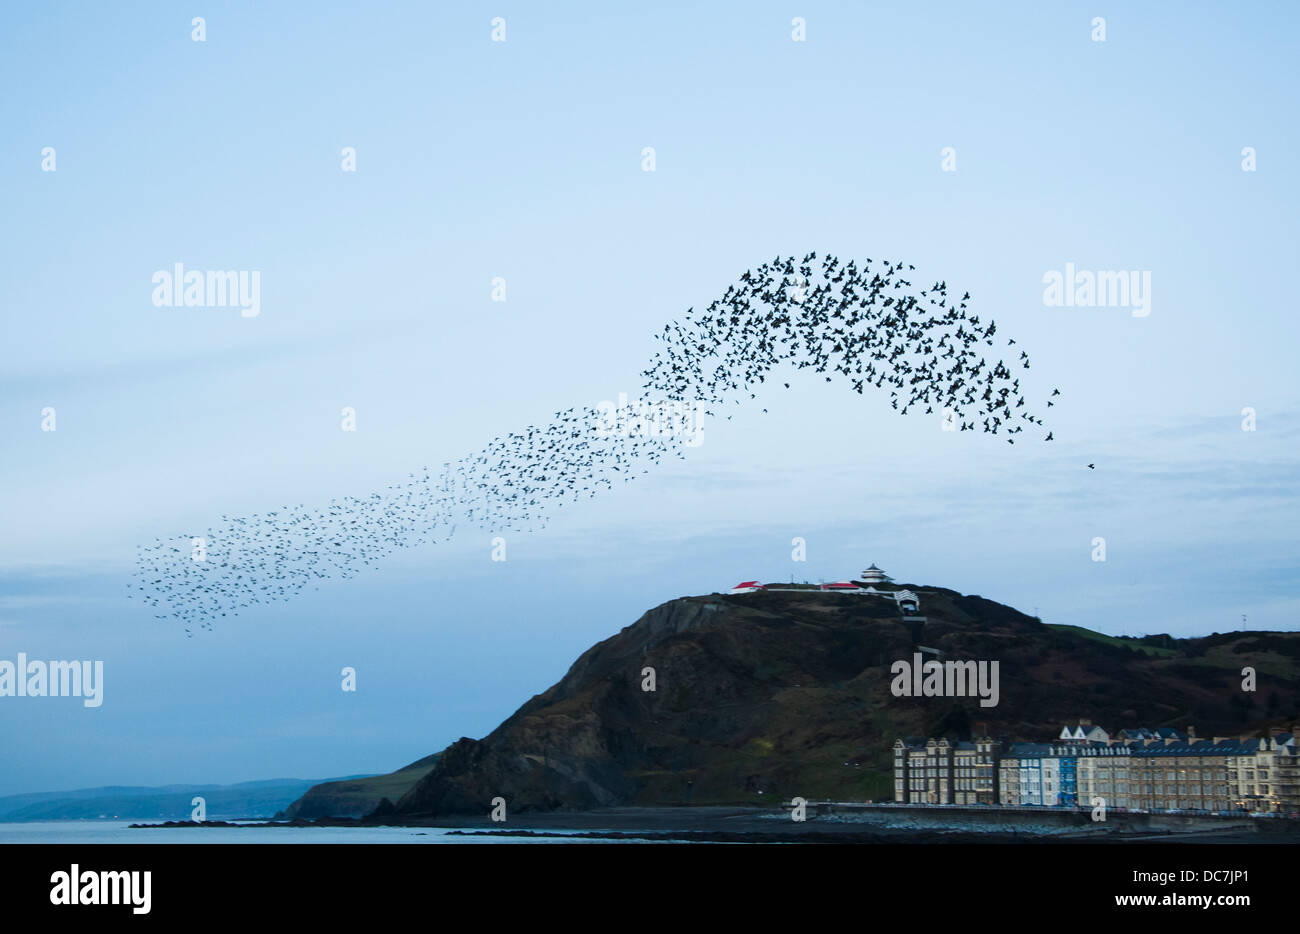 Starlings [Sternus vulgaris] gather for their mass annual autumn / winter roost at Aberystwyth. - Stock Image